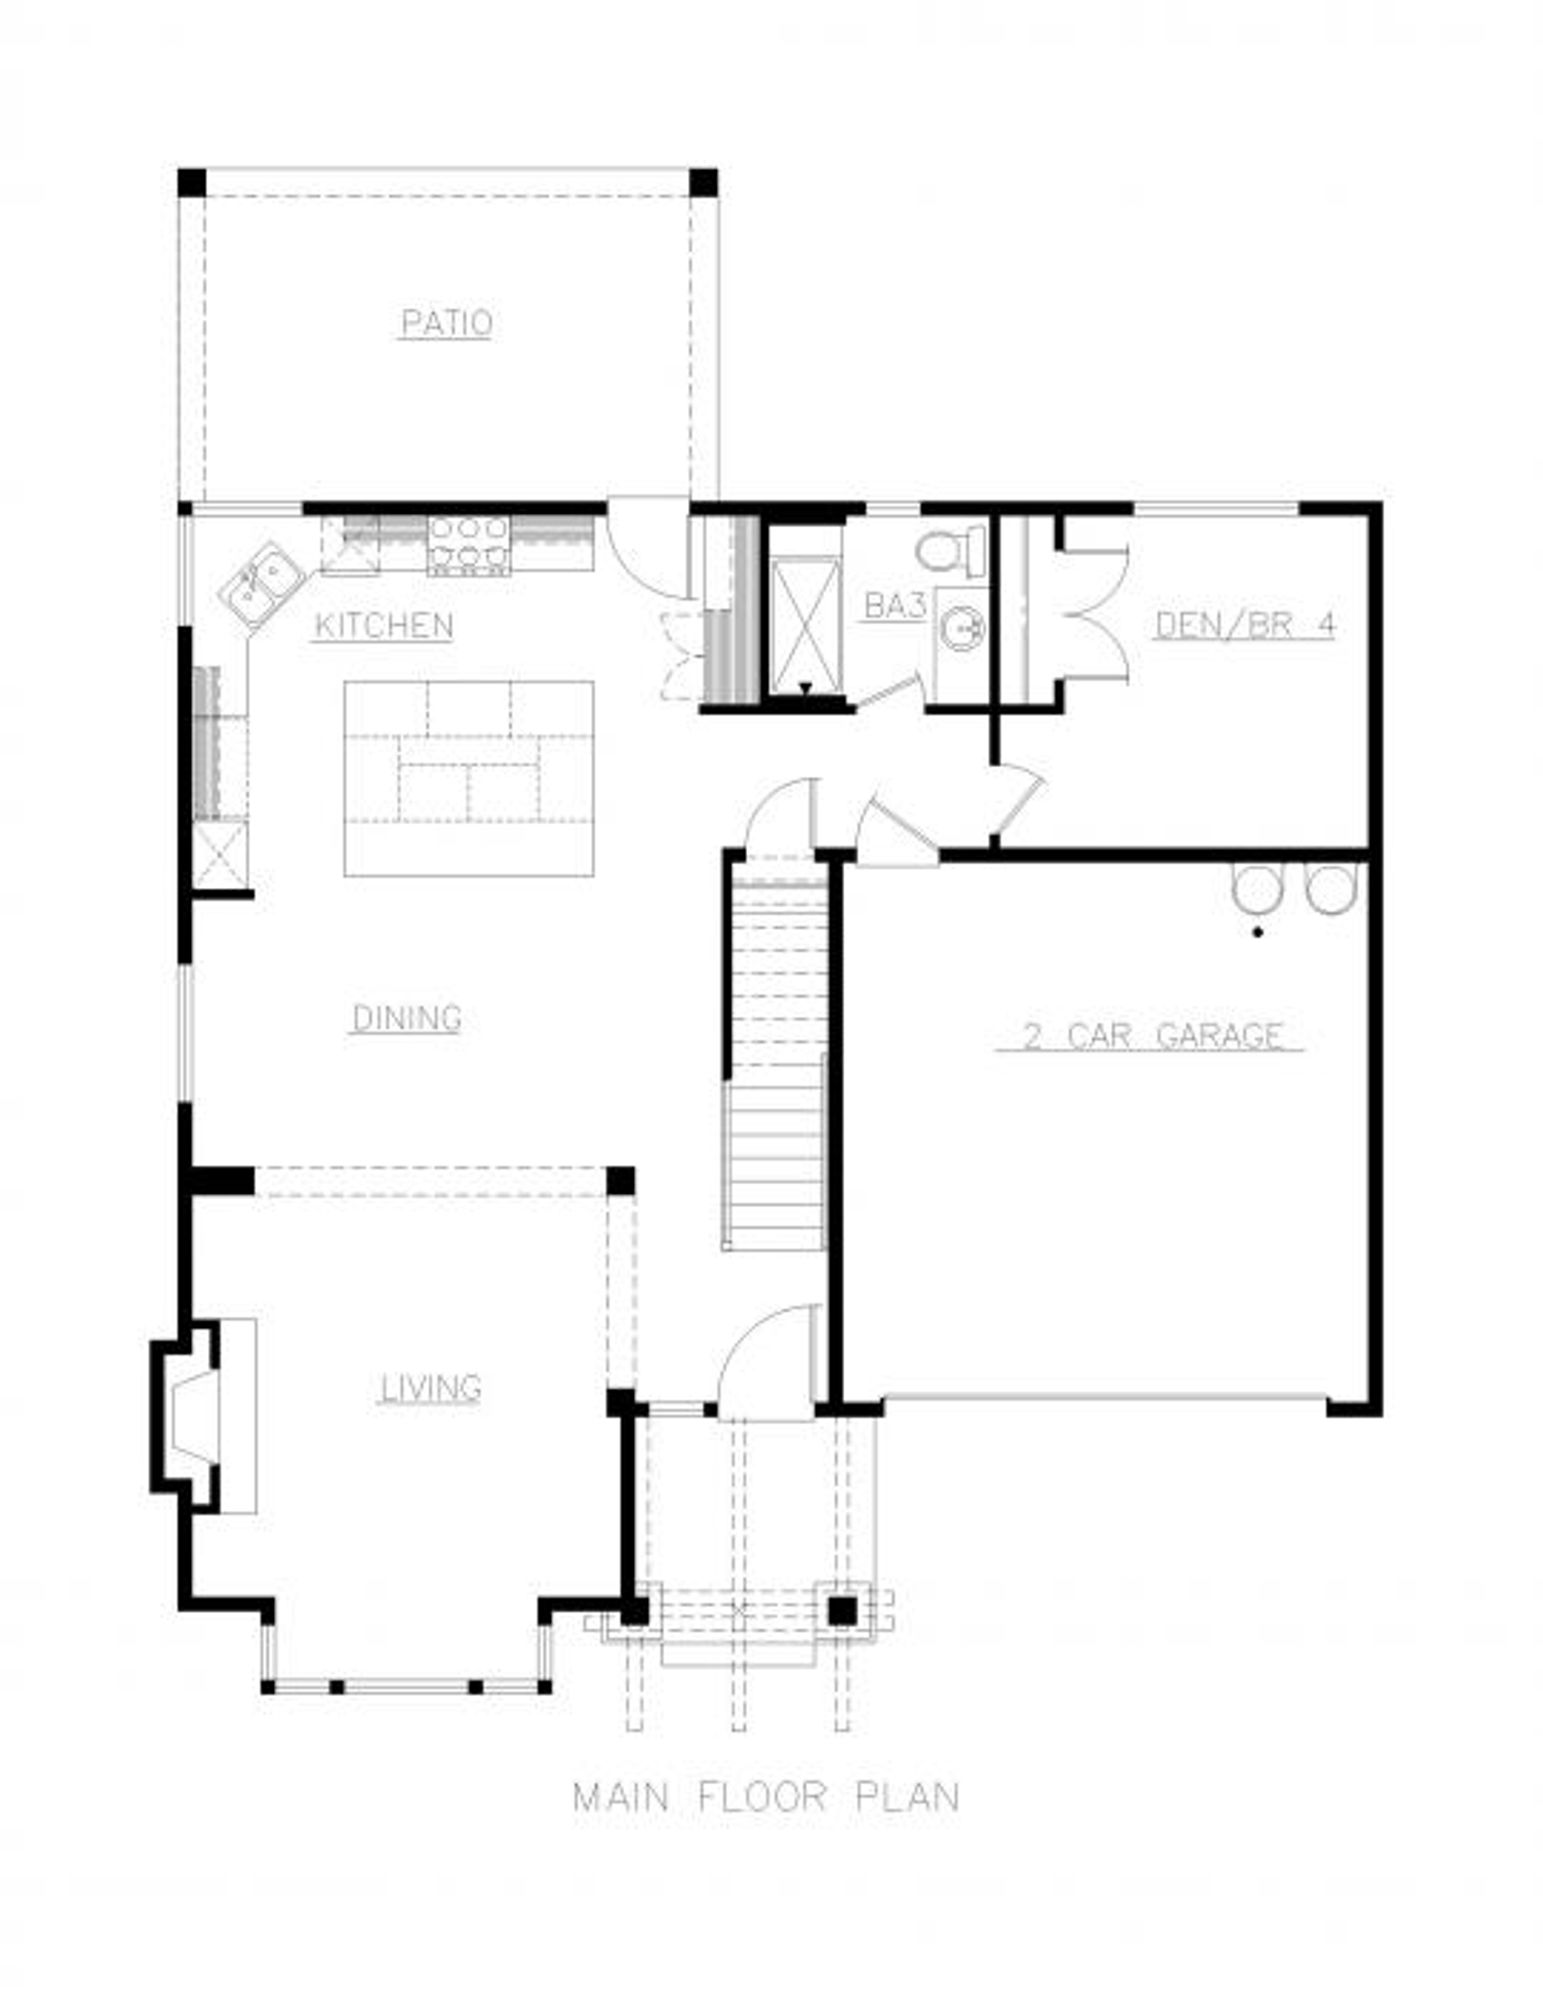 Toulouse Main Floor Plan